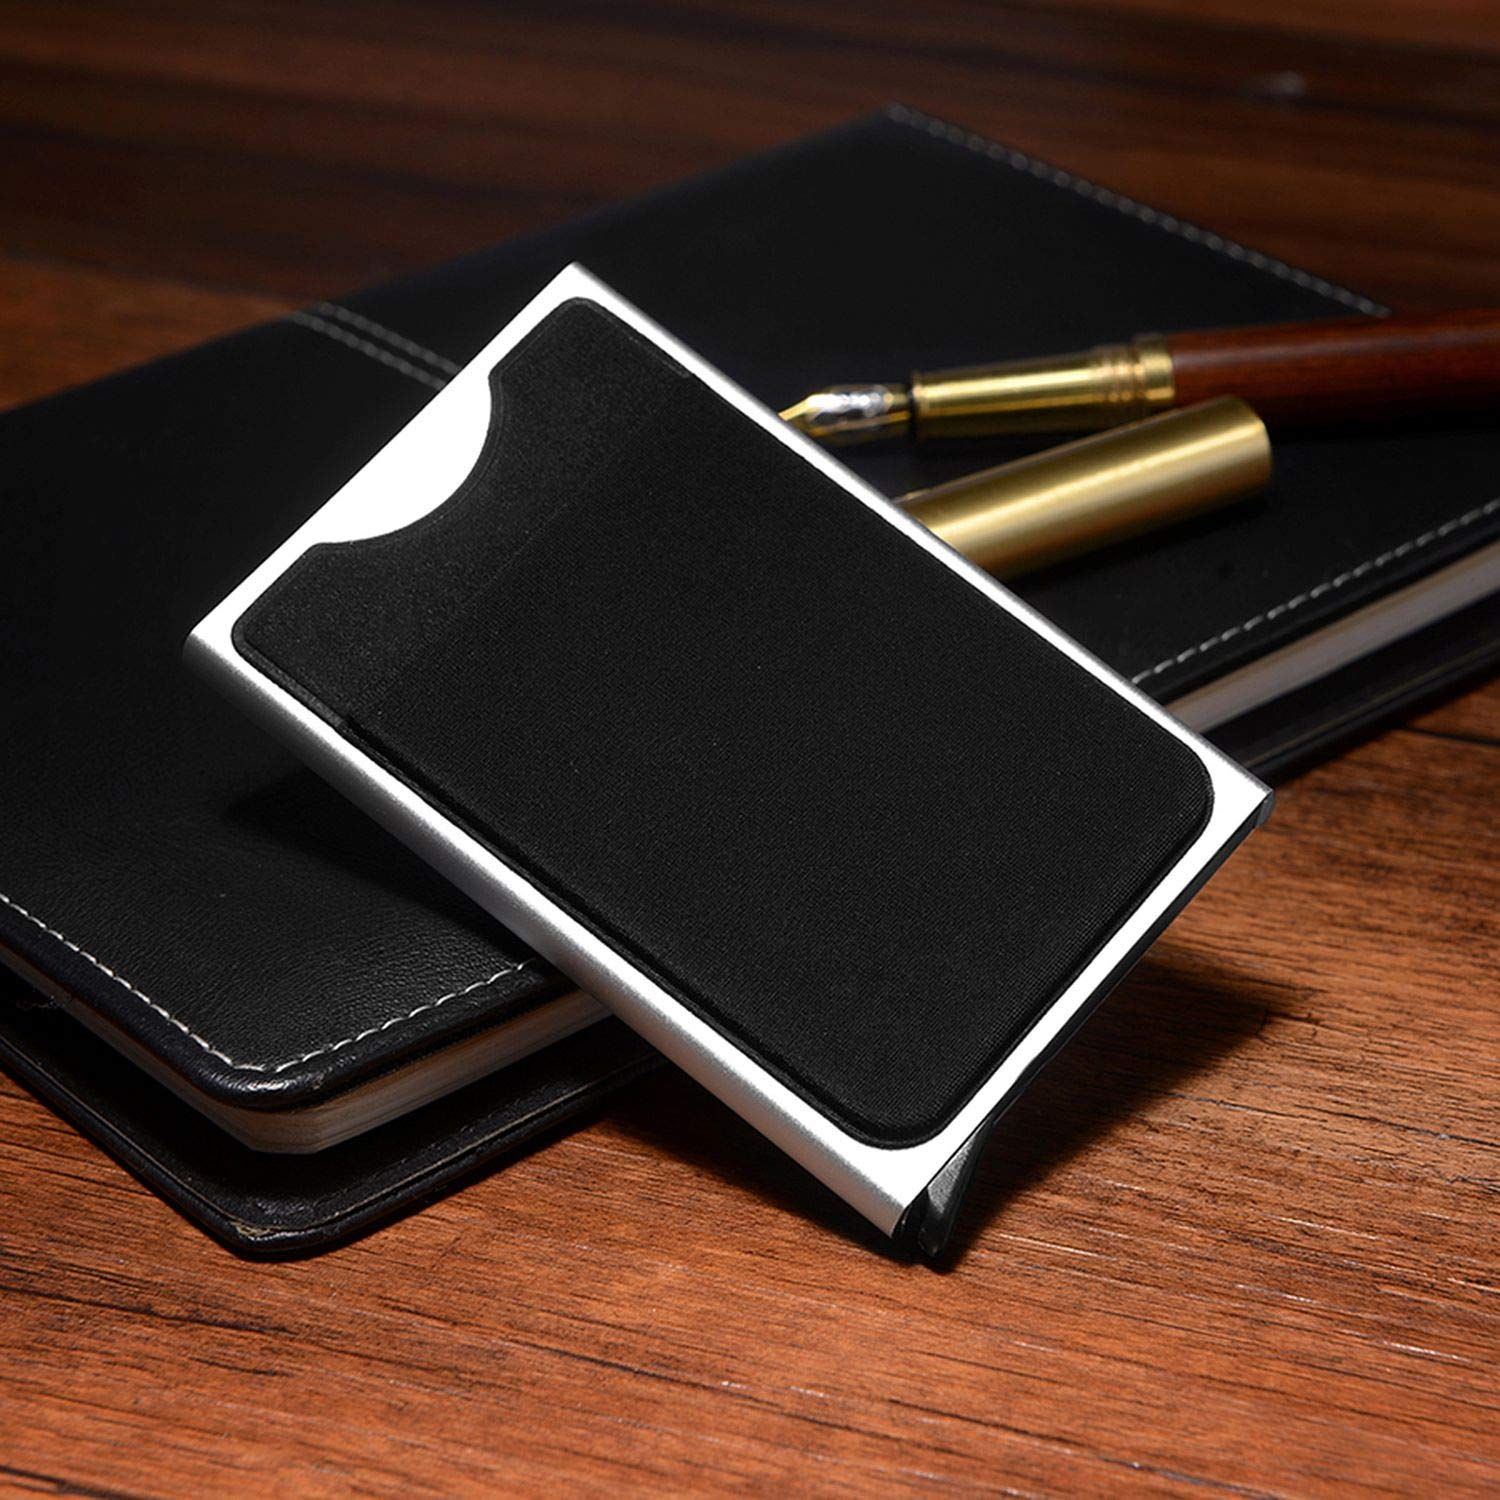 Slim Slide Card Holder Wallet Business Card Case Money Pocket Protector,Black